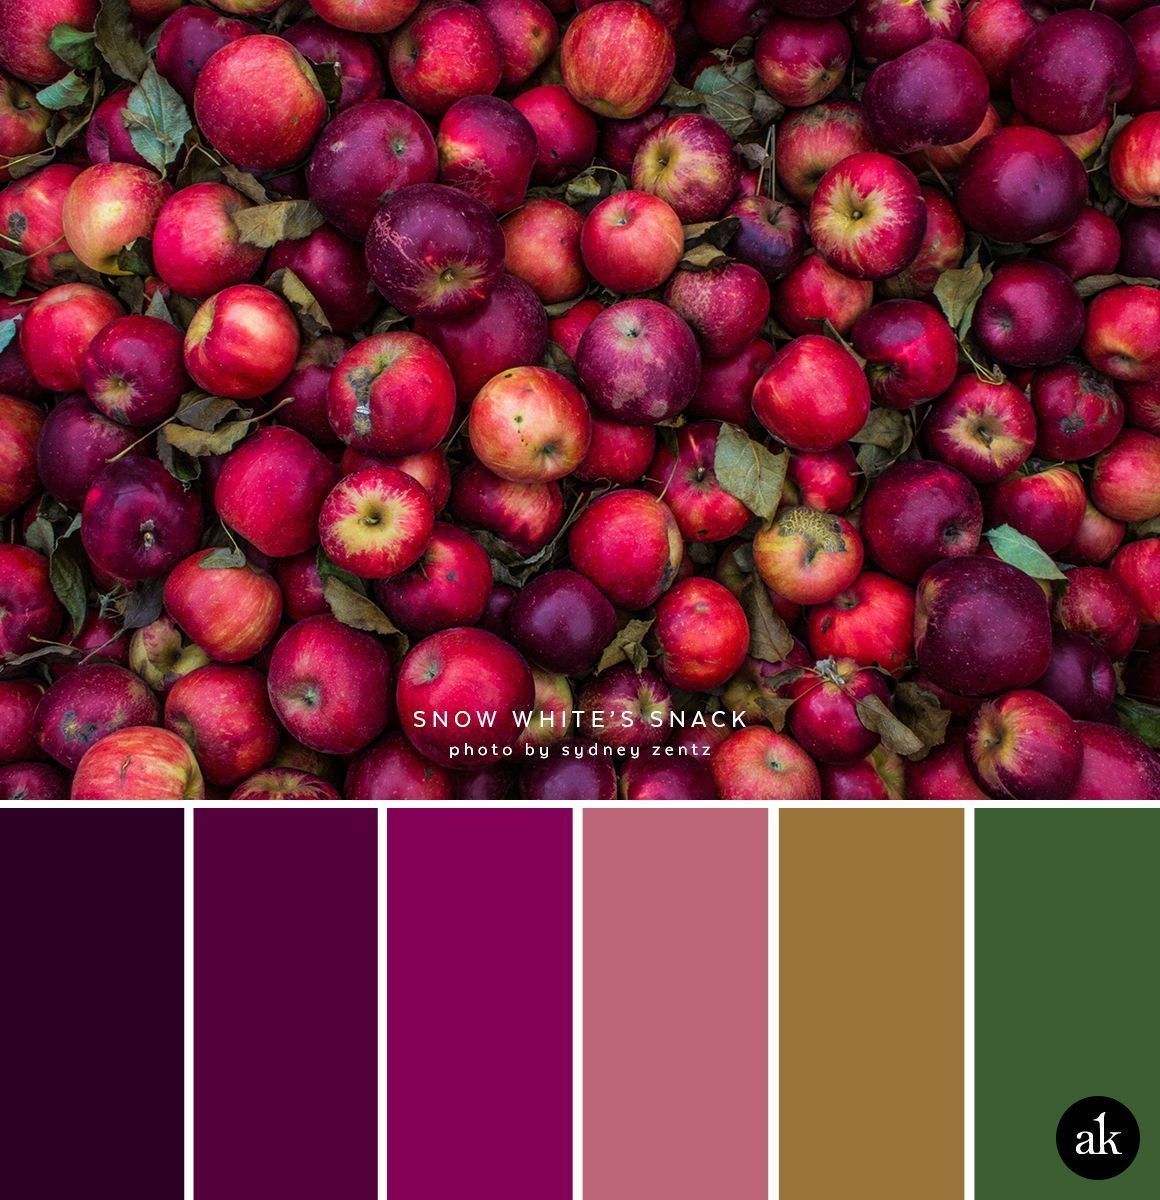 A Moody Apple Inspired Color Palette Dark Aubergine Plum Magenta Dried Rose Pink Gold Forest Green Schlaf Grüne Farbpalette Farbabstimmung Idee Farbe